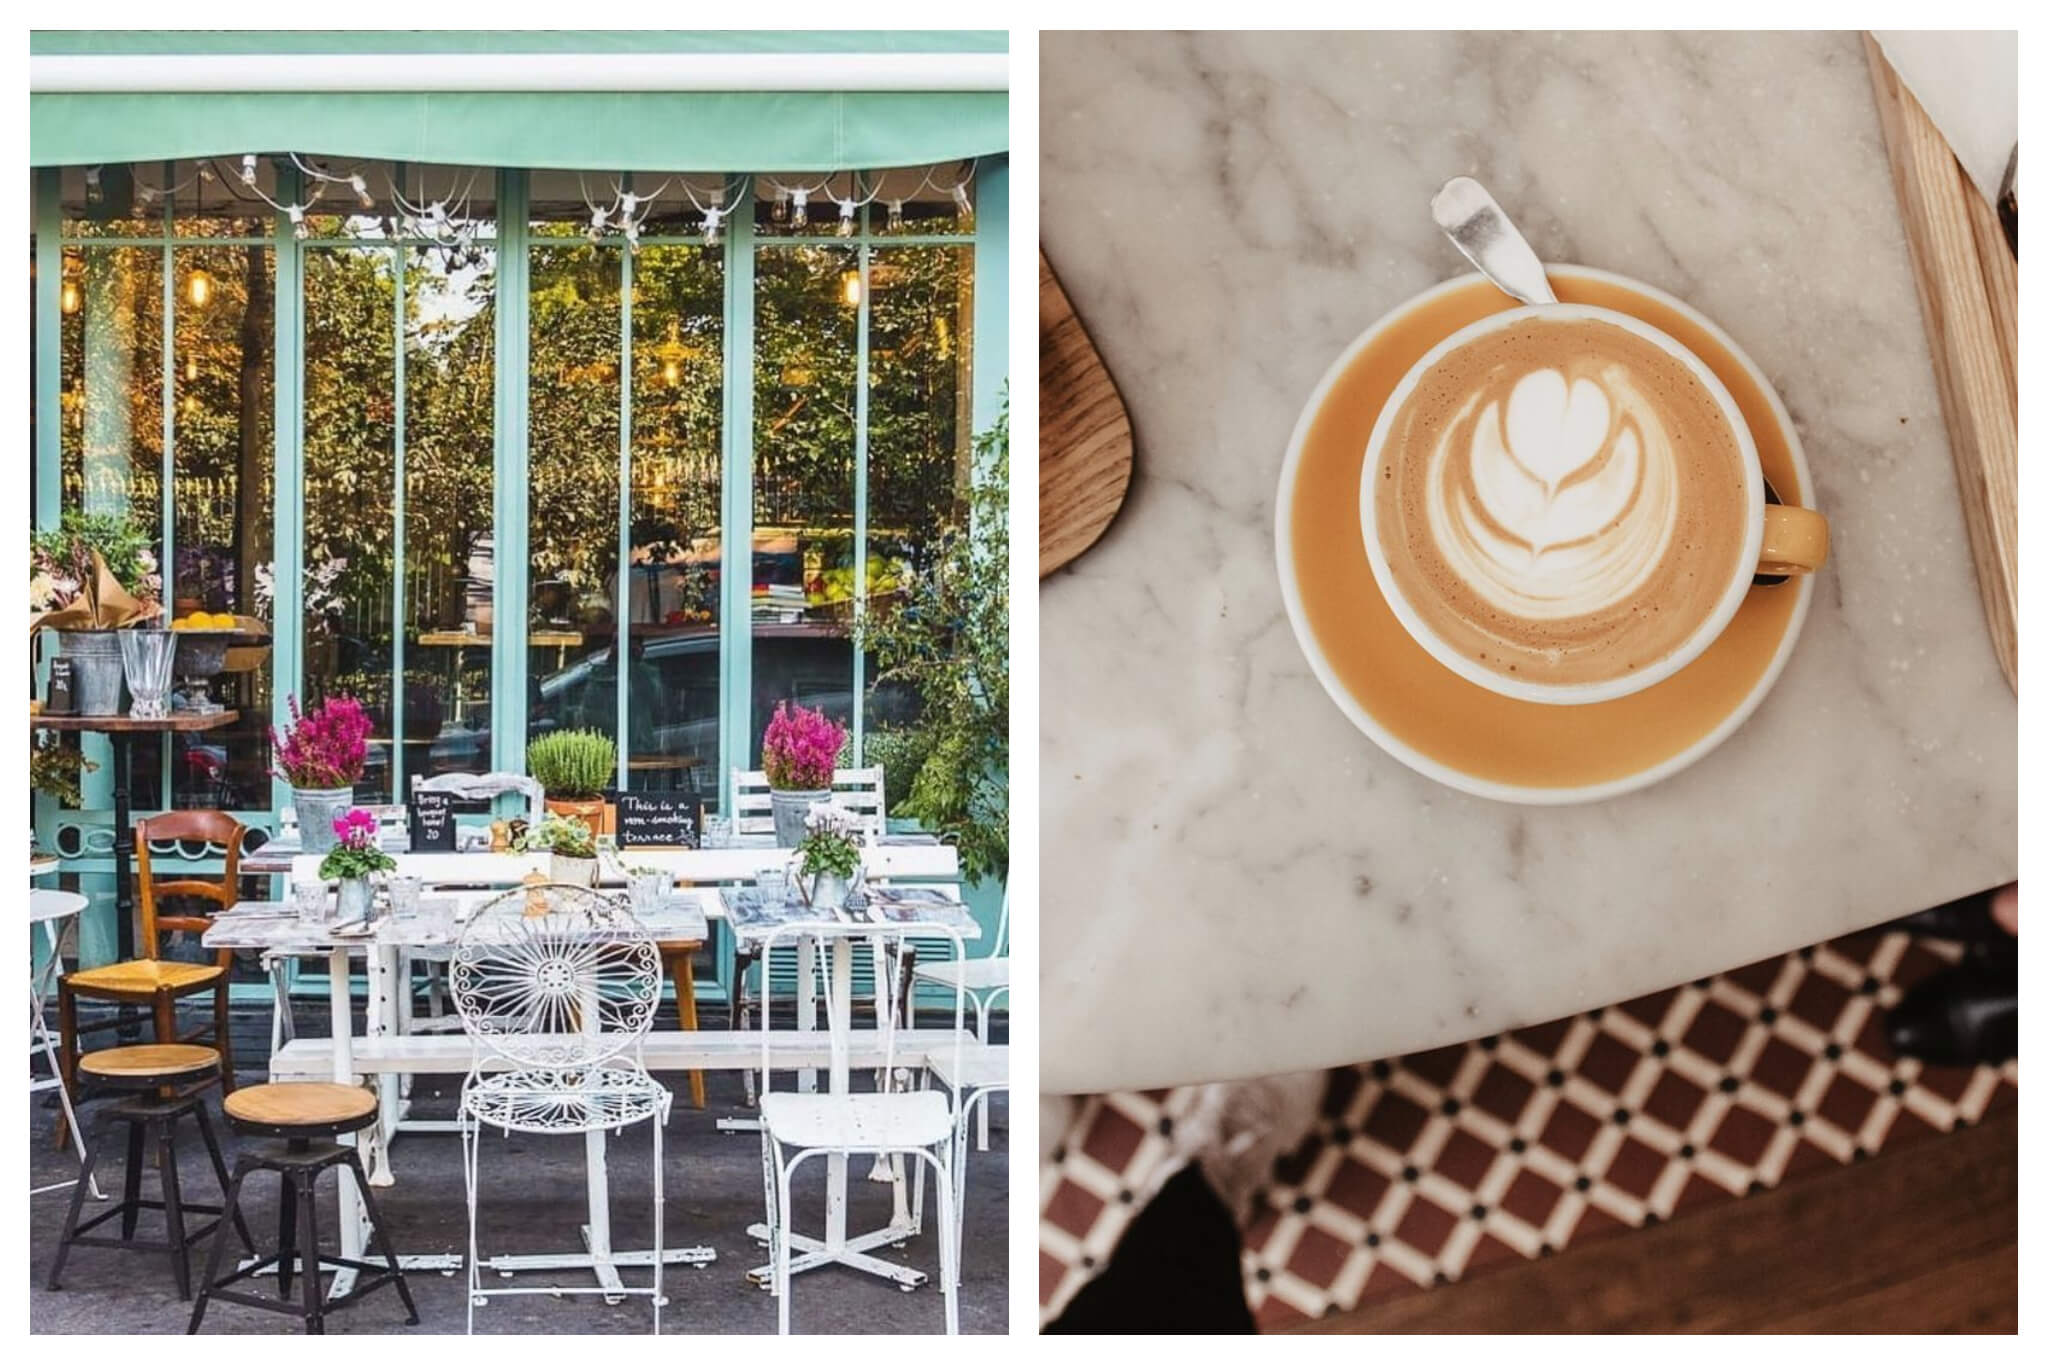 Left: The exterior of a teal and windowed restaurant is shown with the terrace in front. On the terrace there is a white table with various flowers on top, and mismatched chairs around it. Right: A latte with flower art is pictures on top of a marble countertop.